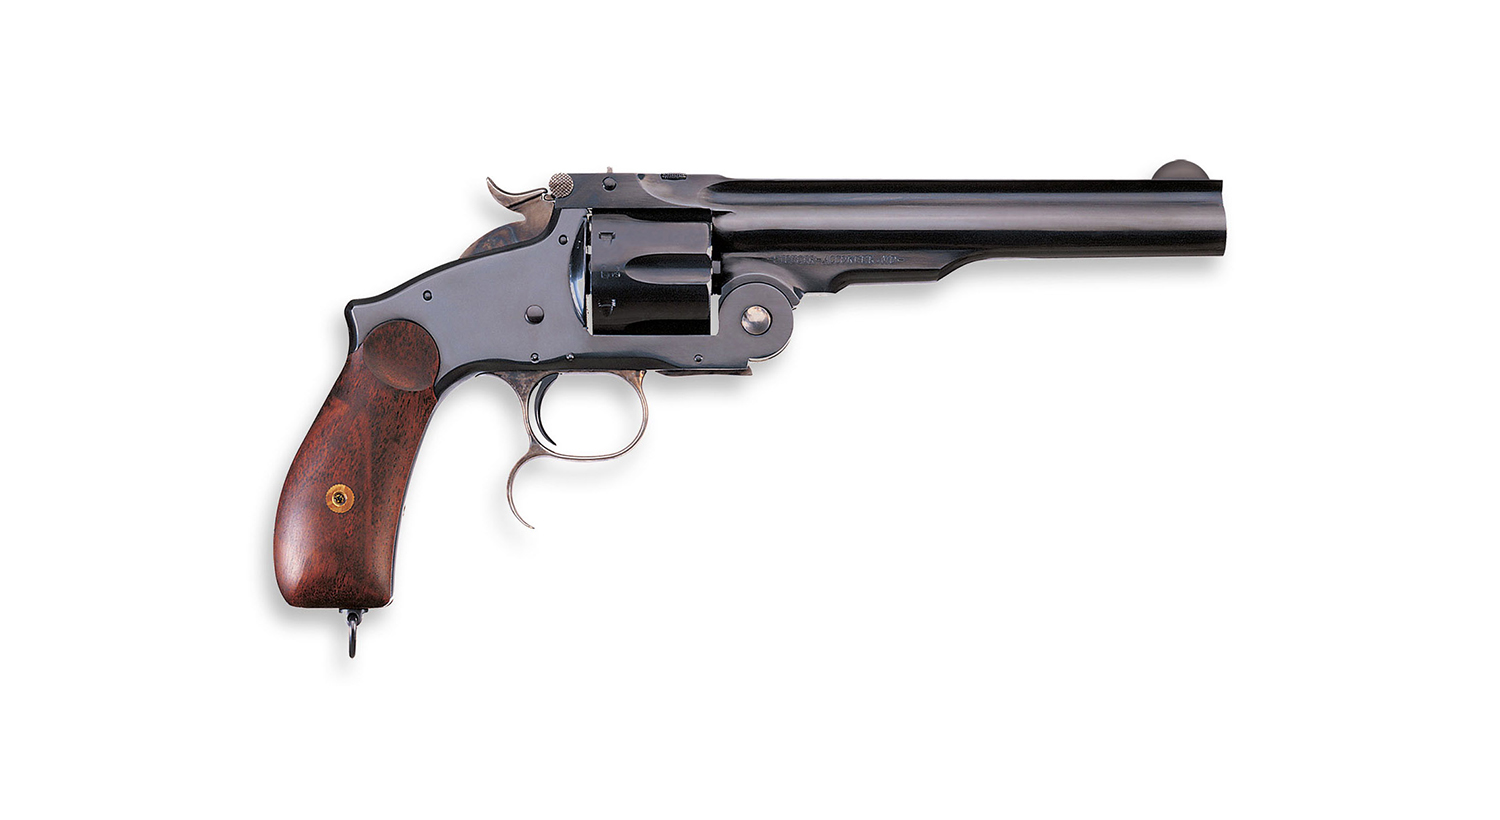 Russian 3 mod uberti replicas top quality firearms for The russian mod